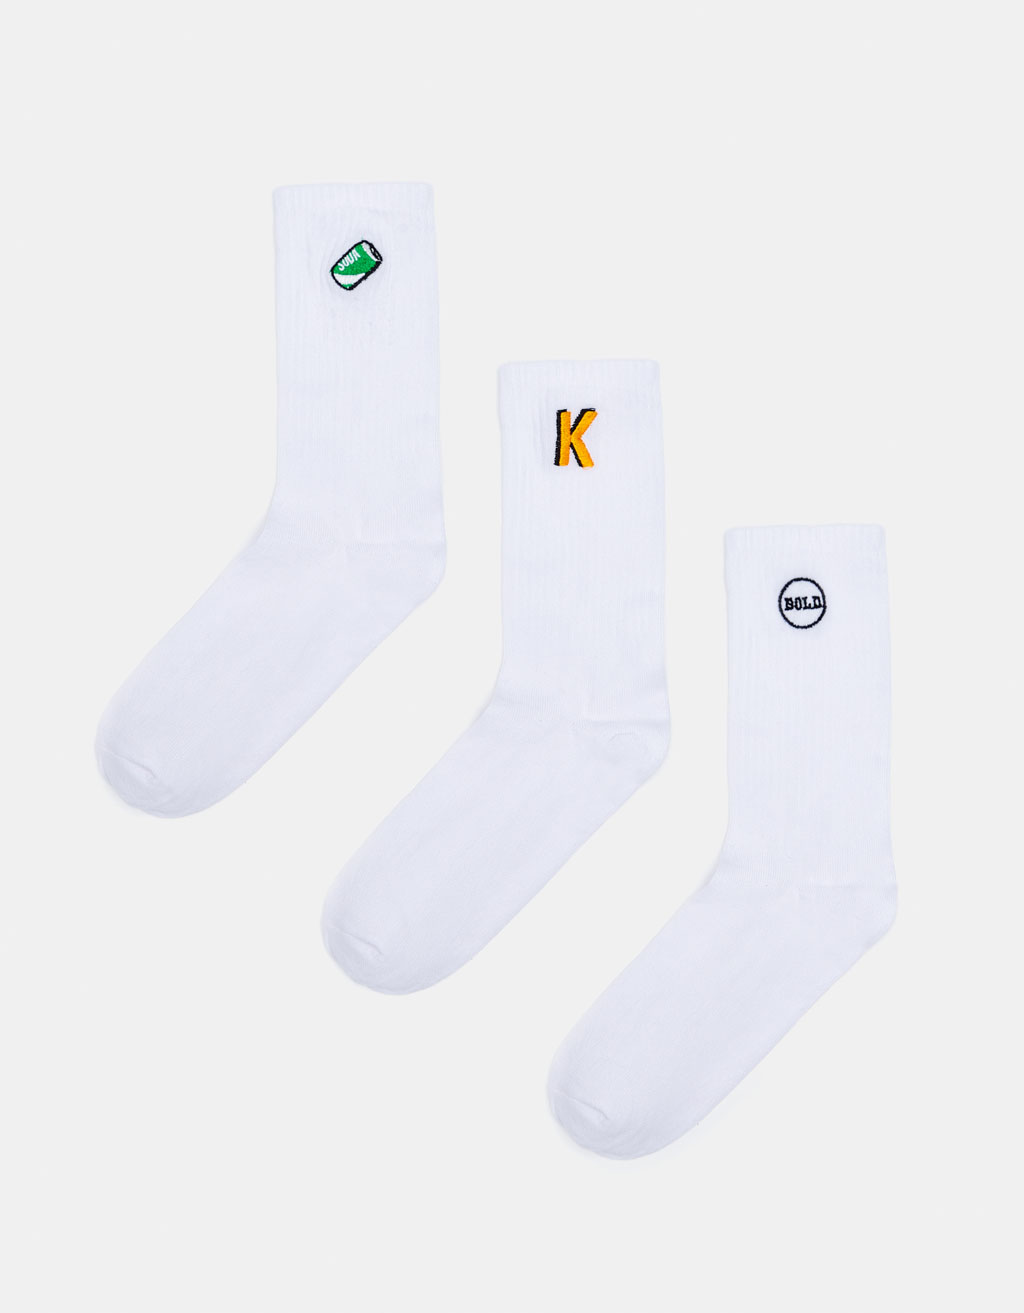 Pack de 3 calcetines bordados